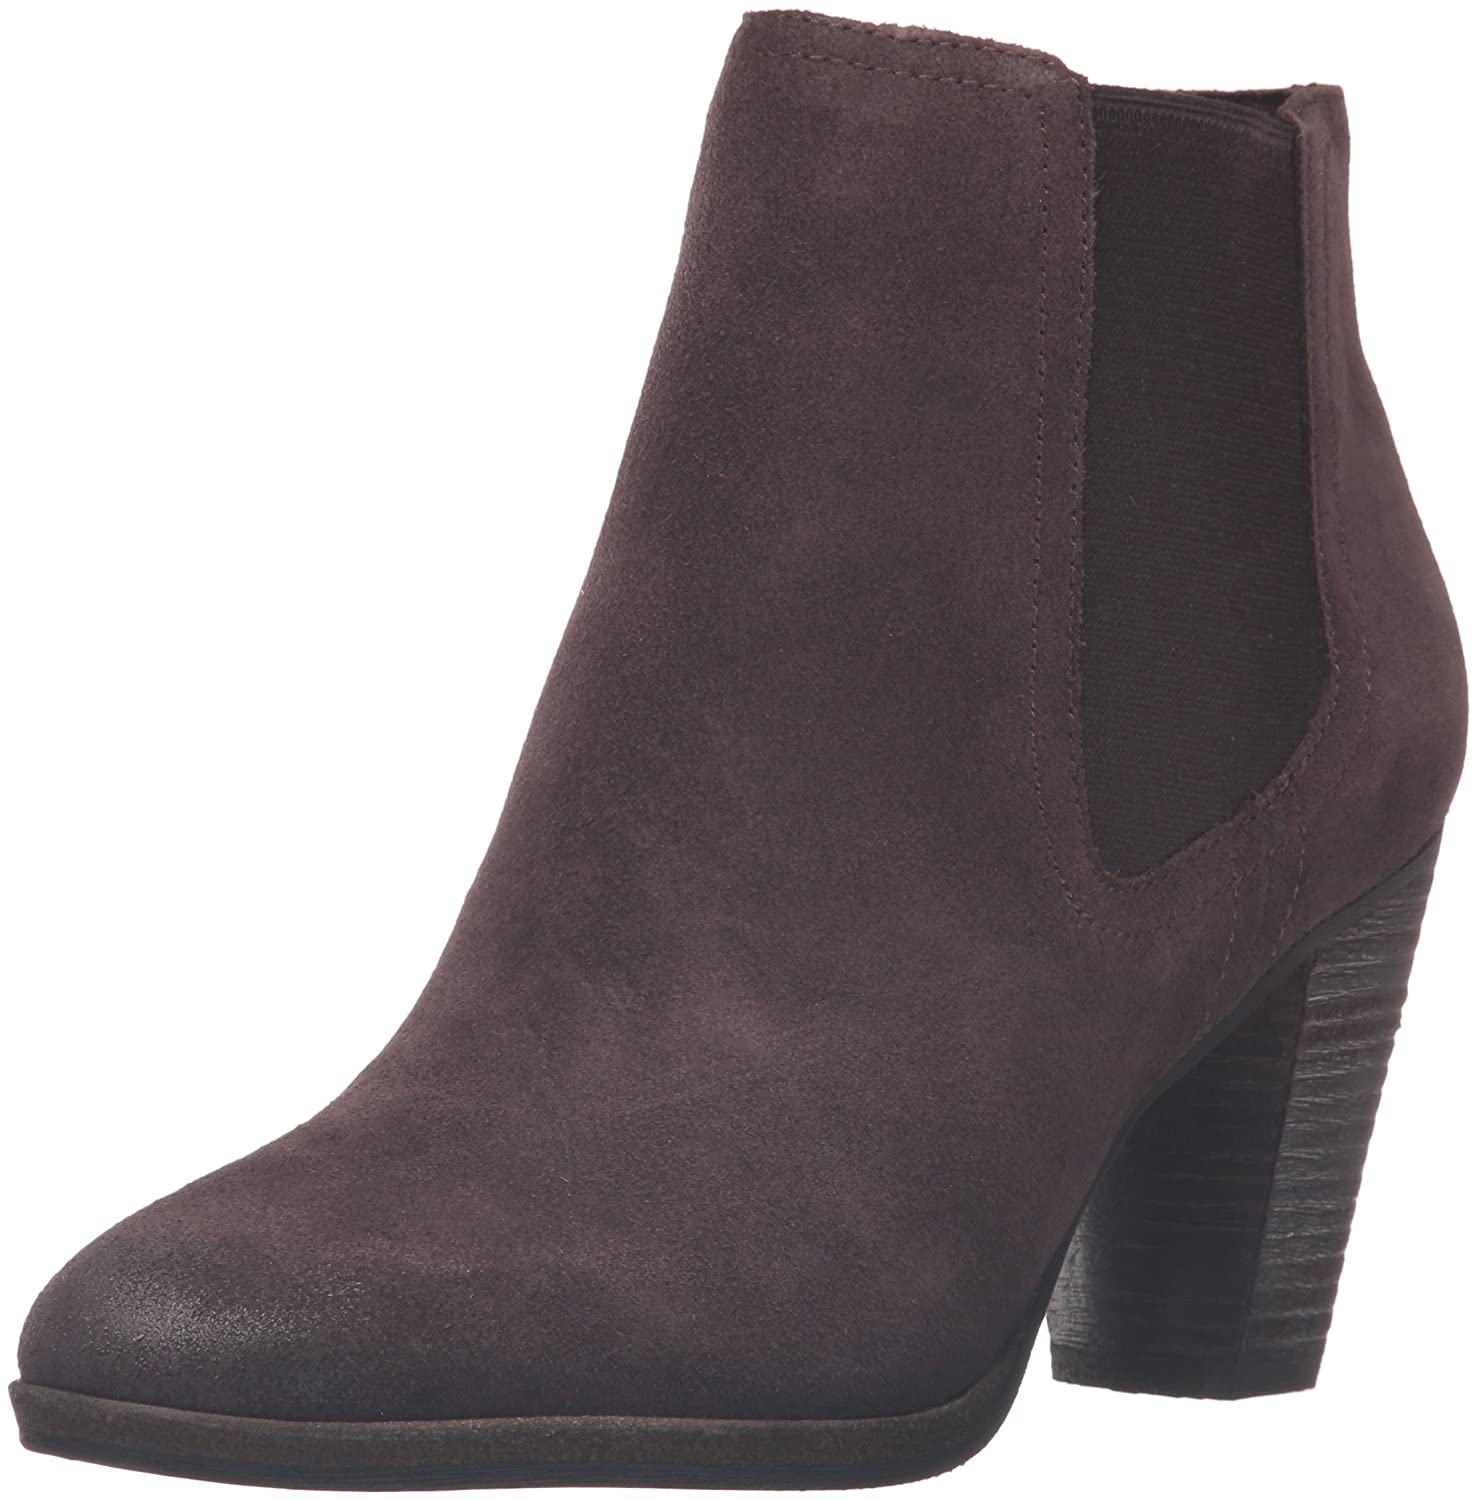 Cole Haan Women's Hayes Gore Ankle Bootie B01FX70ENM 10 B(M) US|Java Suede